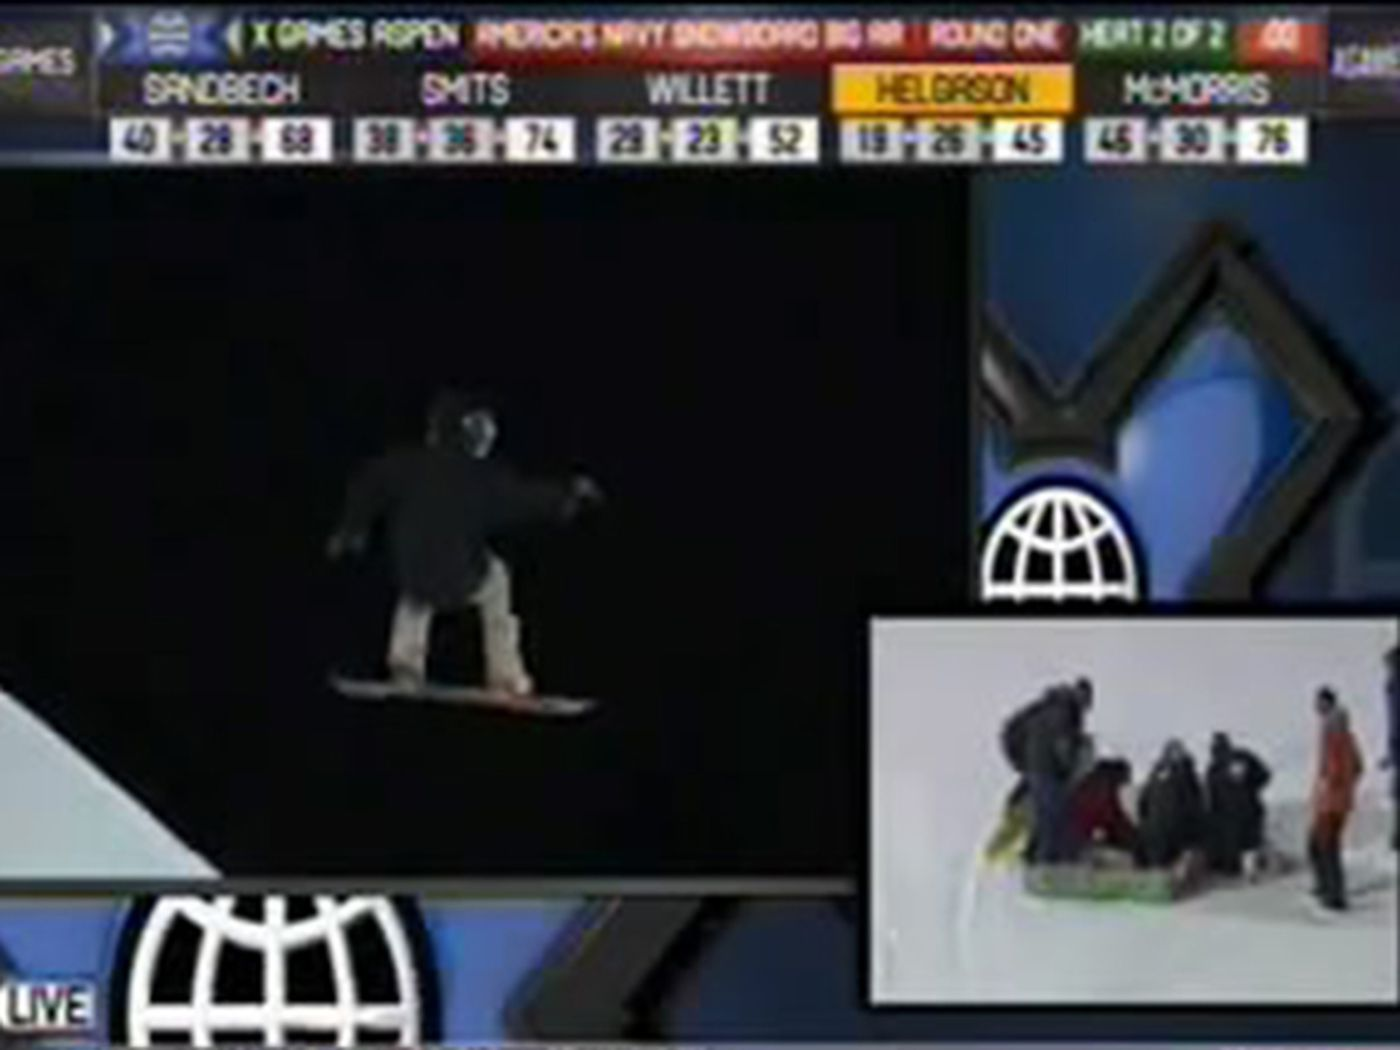 X Games snowboarding competitor Halldór Helgason wipes out